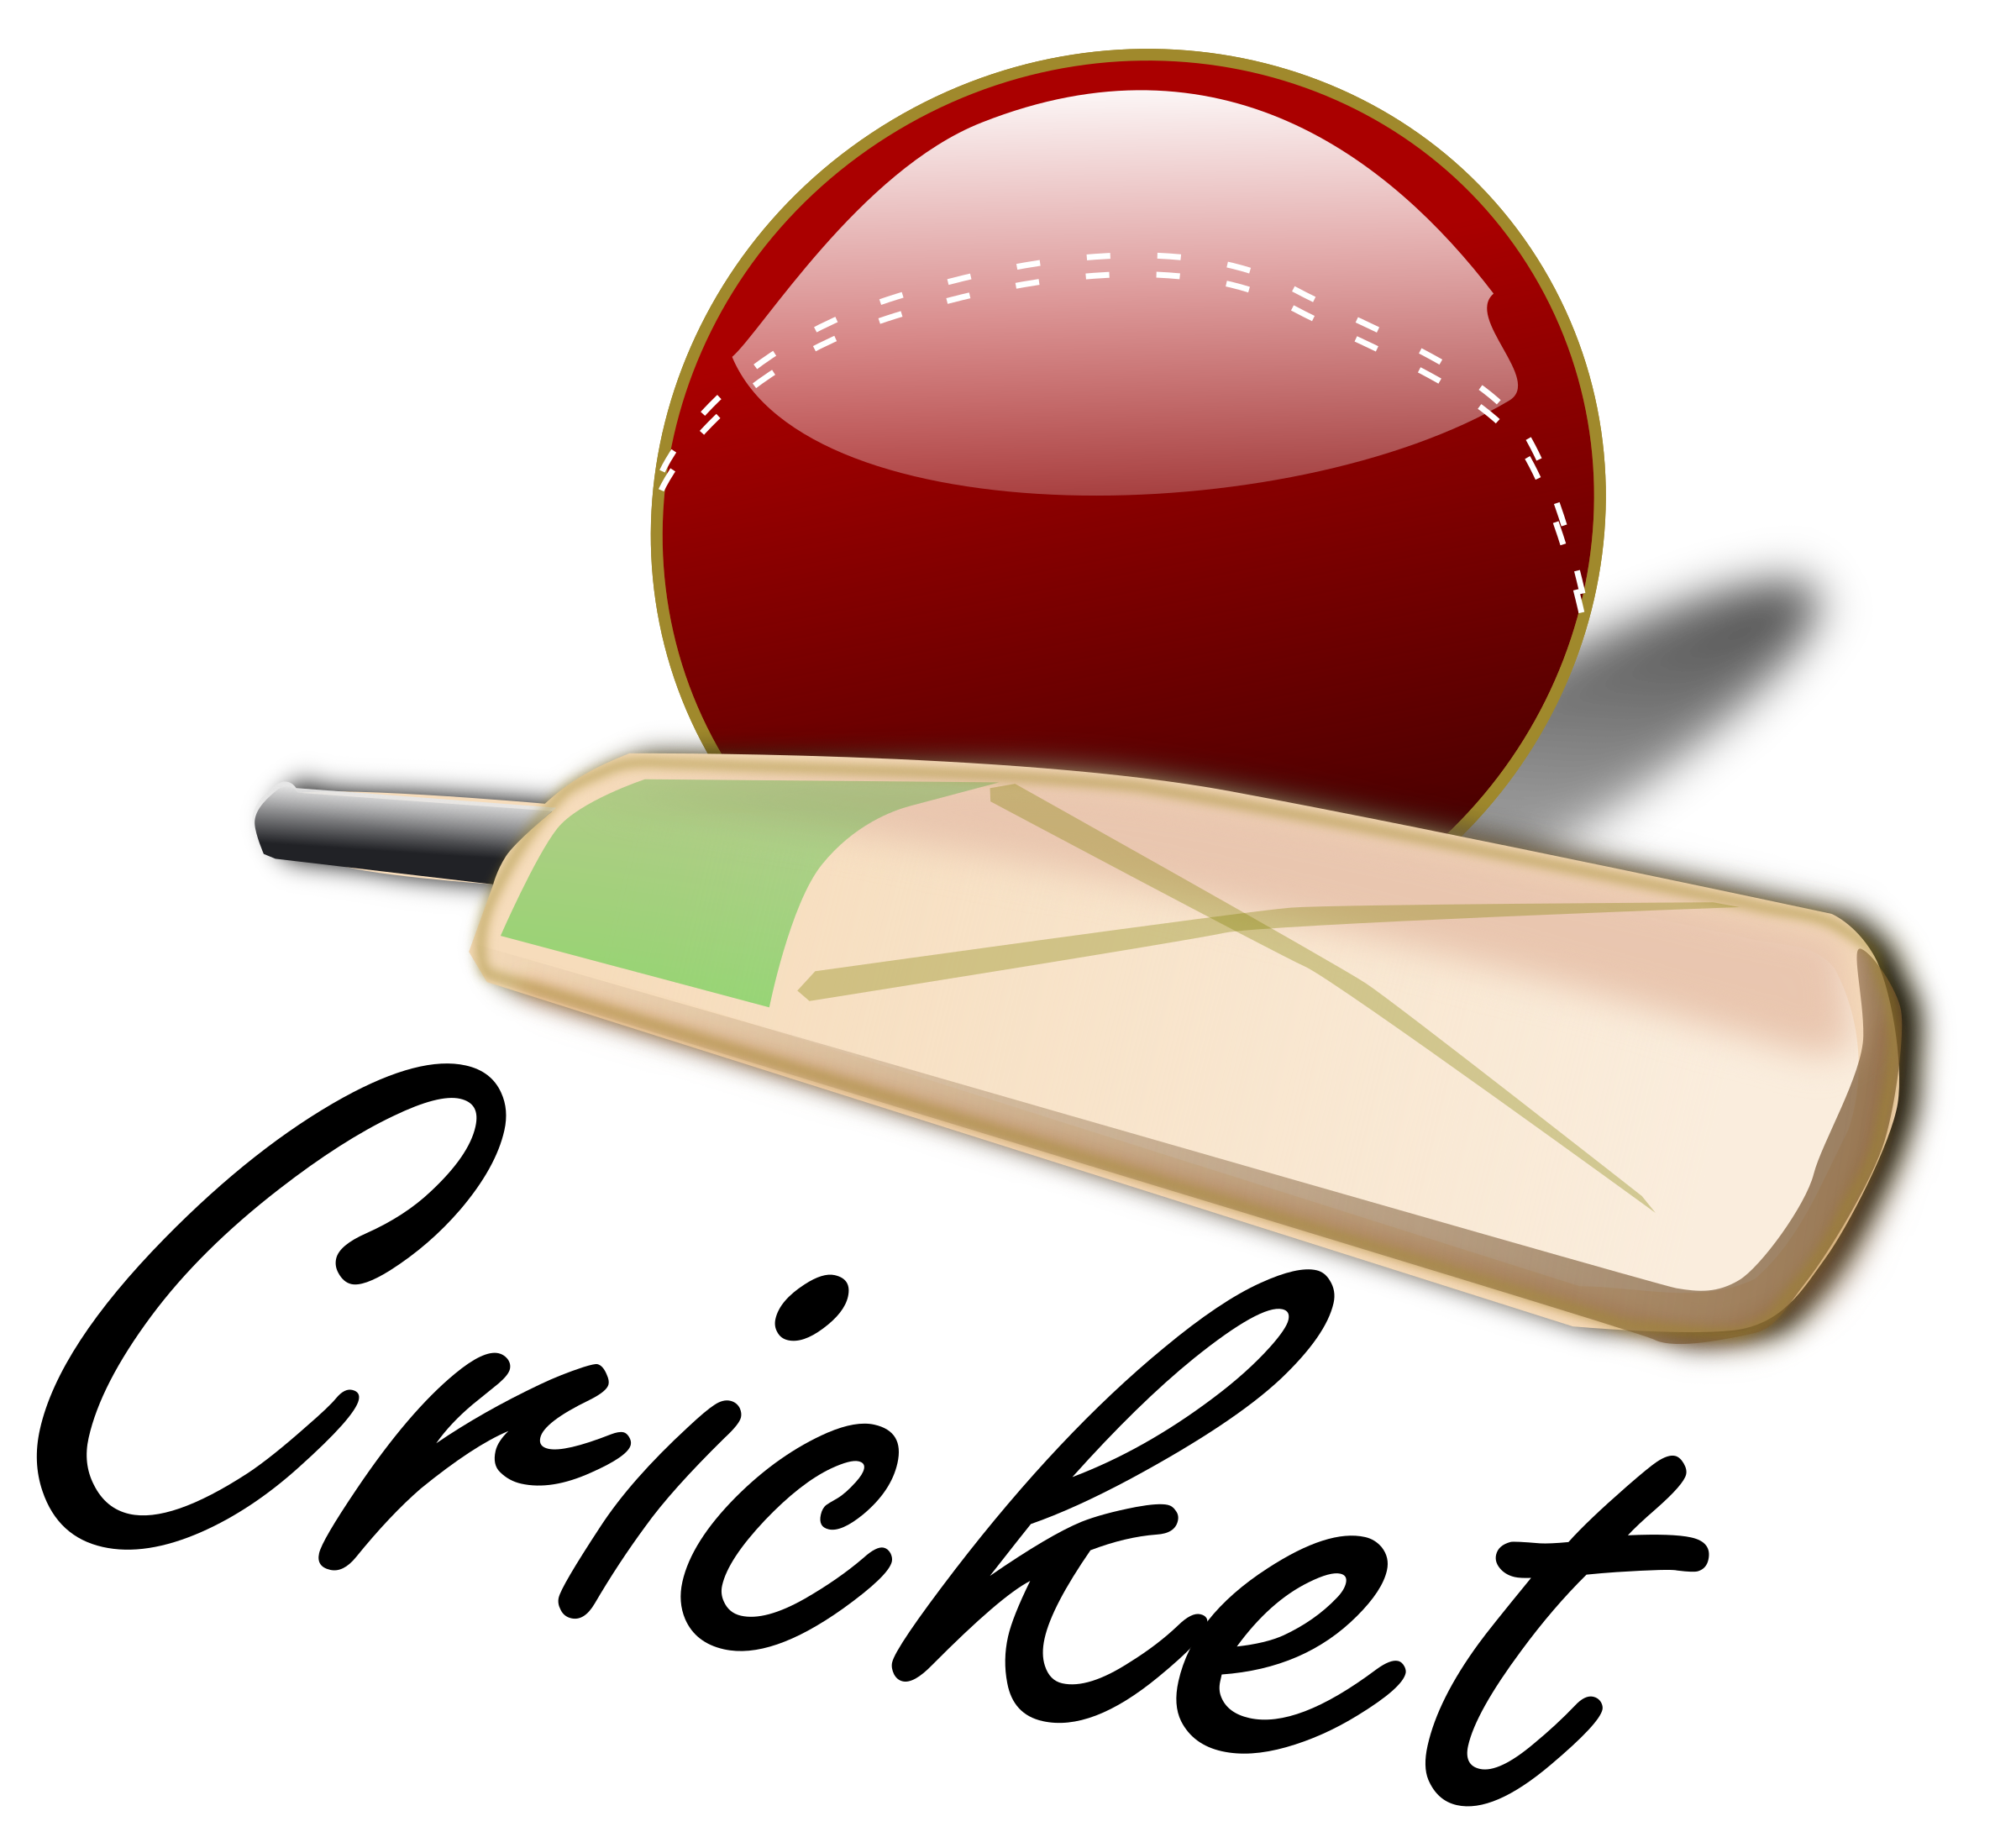 graphic royalty free Cricket clipart. Big image png